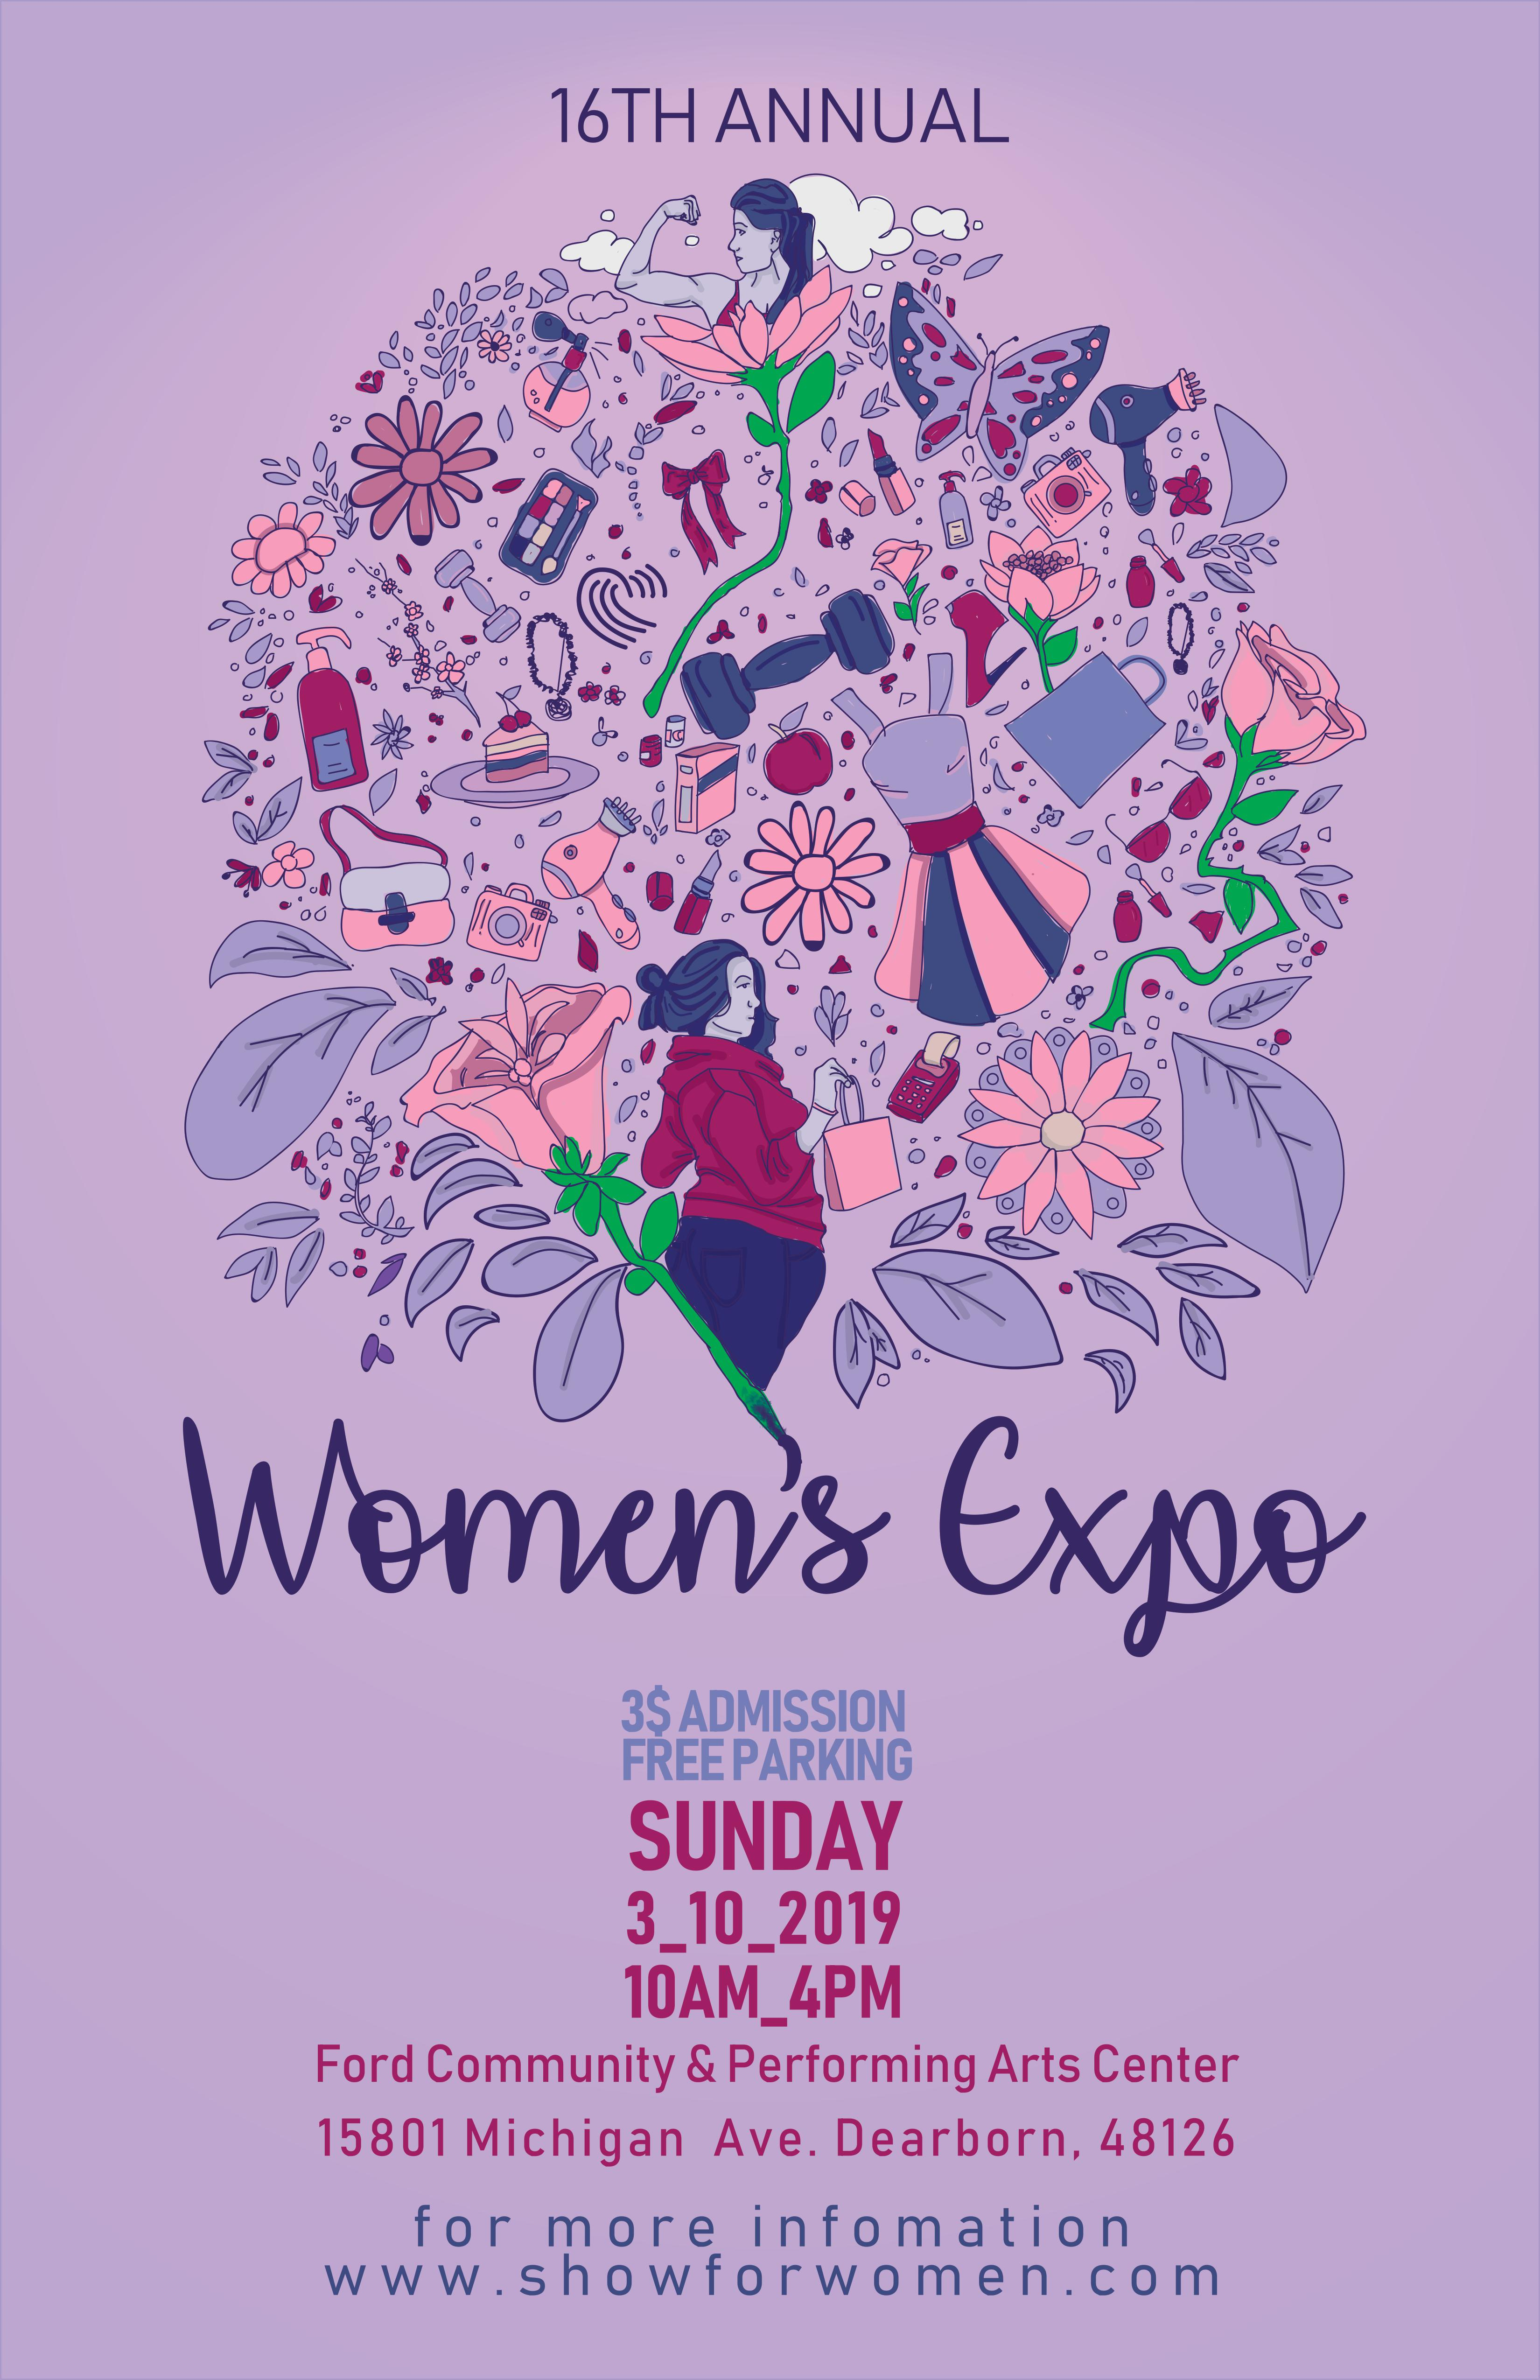 Image of a woman's expo poster